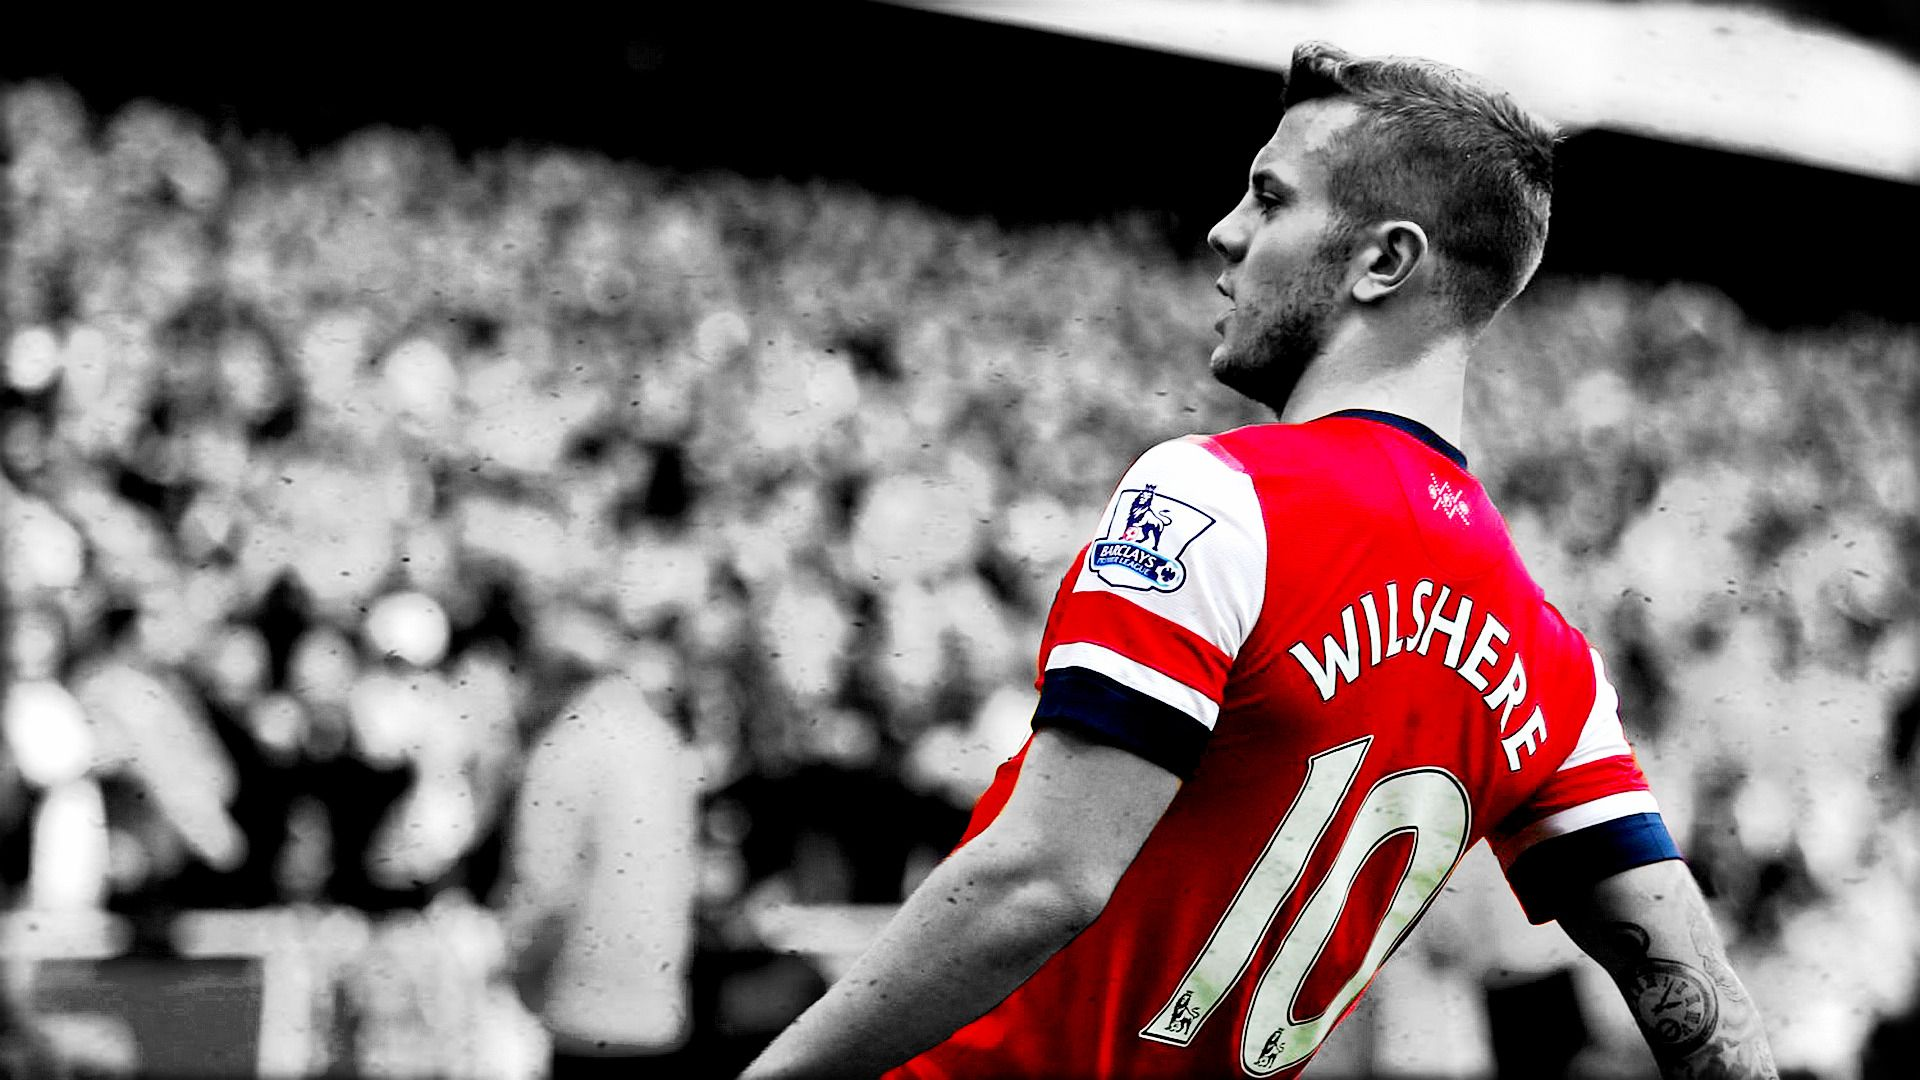 Arsenal, Jack Wilshere Wallpapers HD / Desktop and Mobile Backgrounds